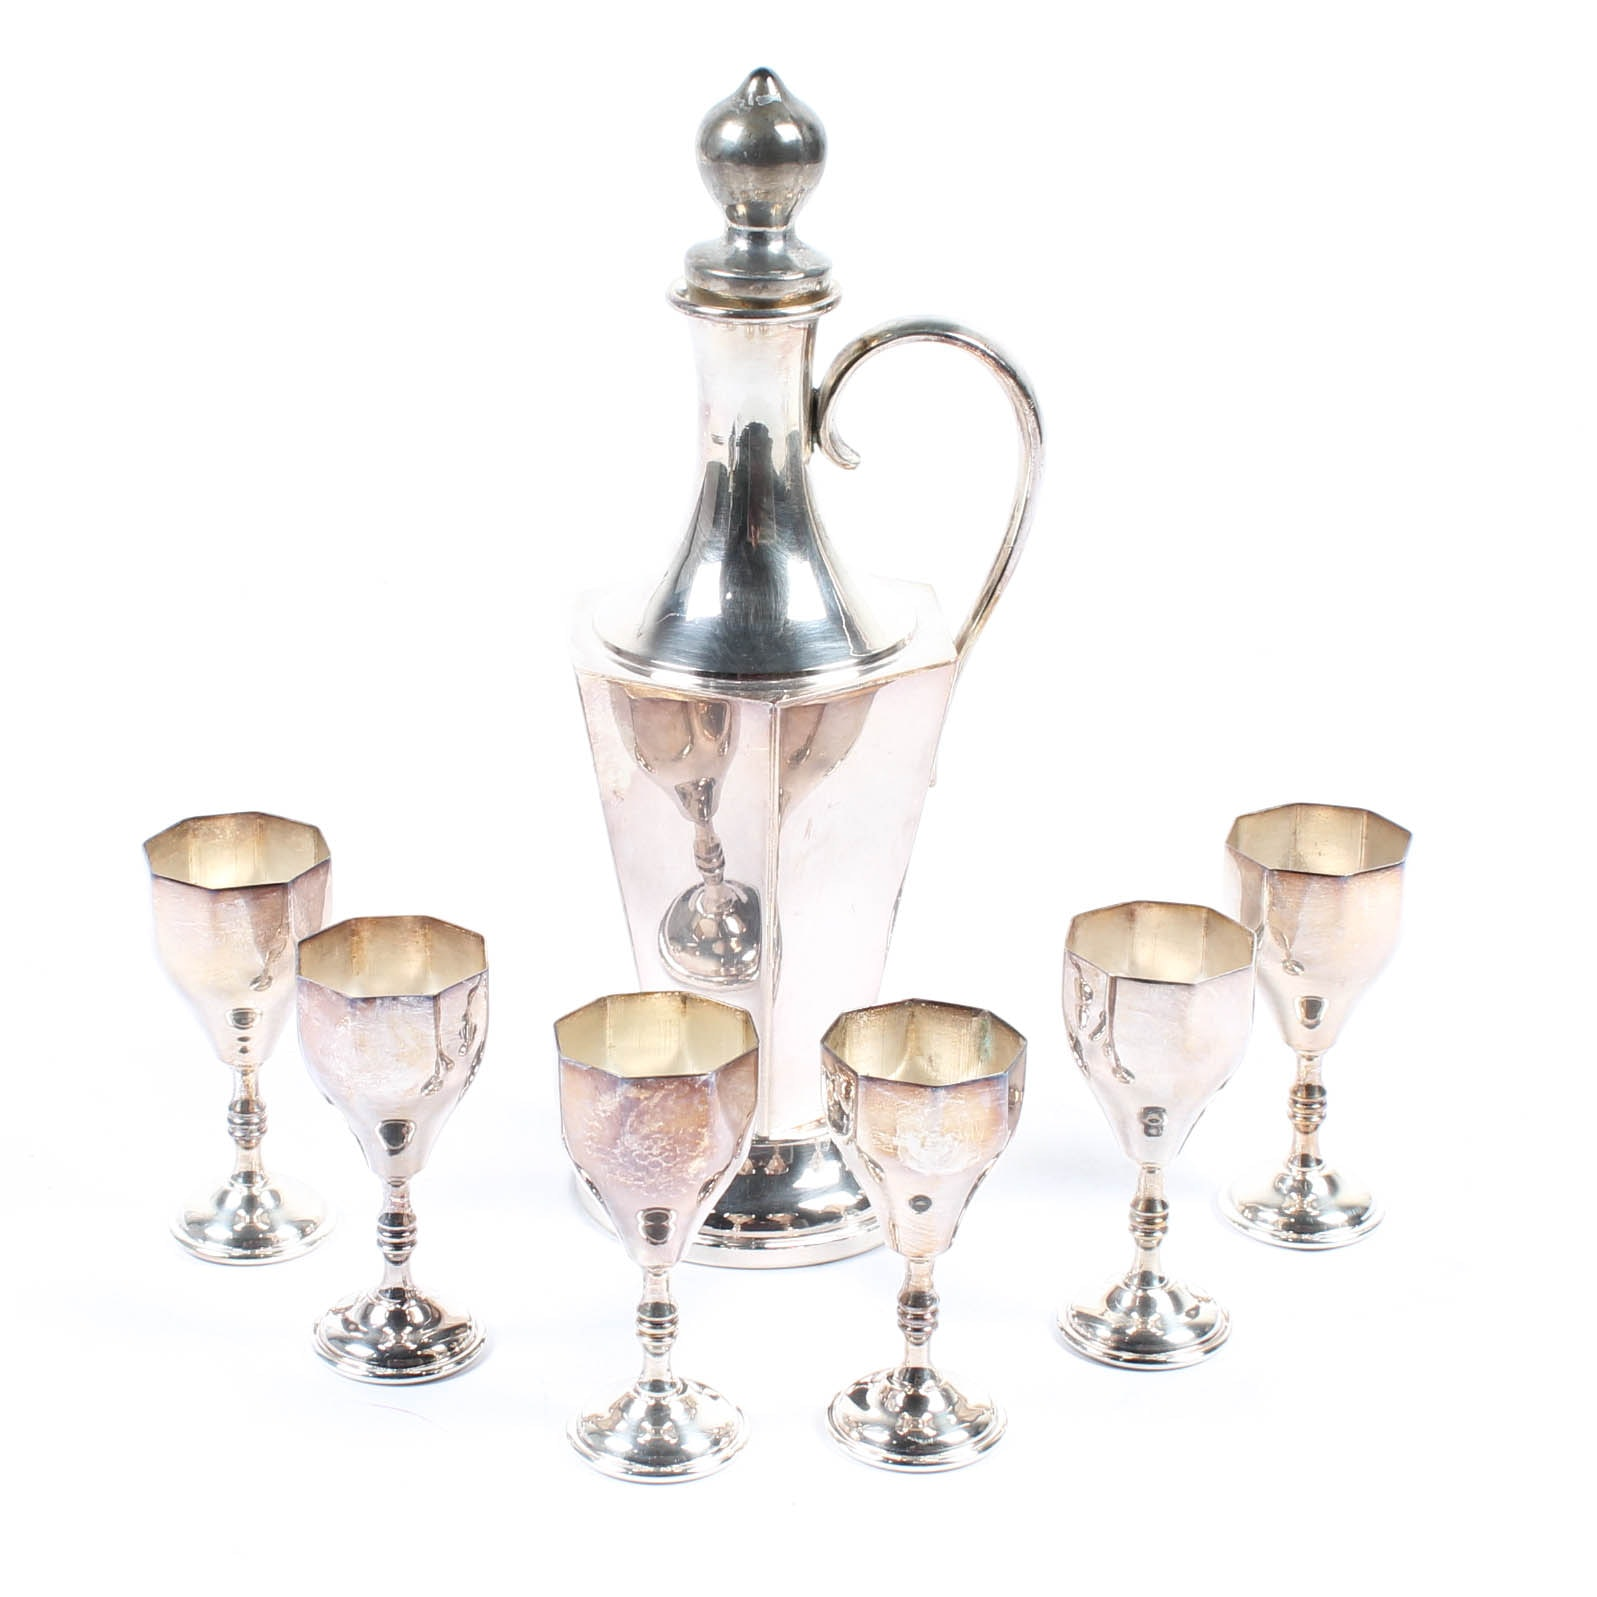 Sheffield Silverplate Decanter and Cordials